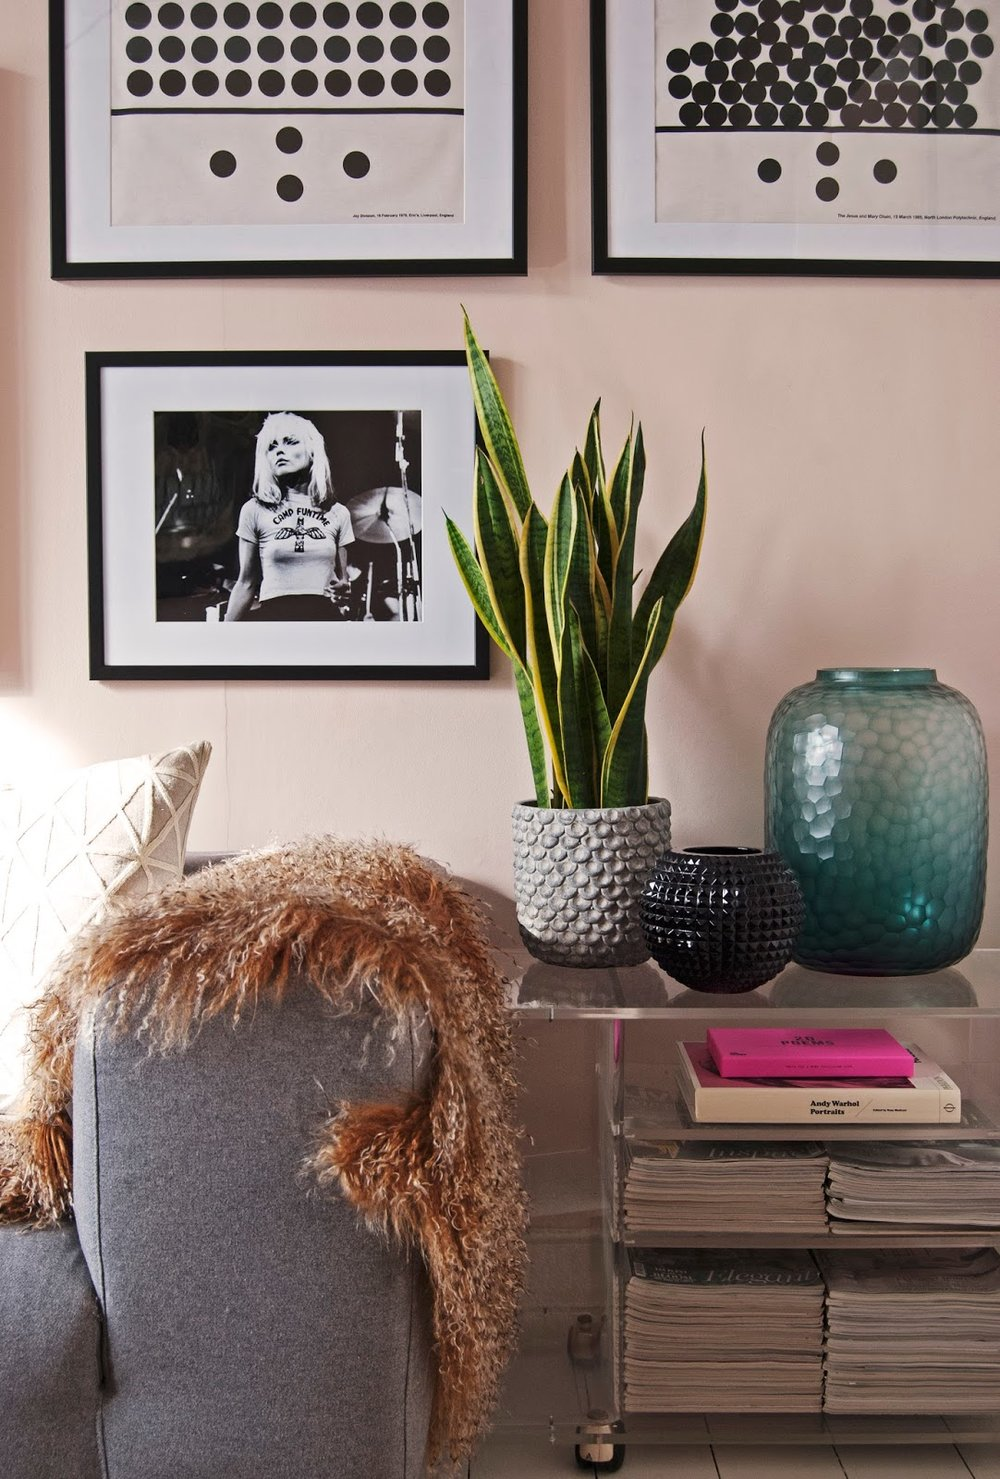 Amara Shoppable Home Inspiration Pages - French For Pineapple Blog - blush pink walls pink ground farrow and ball monochrome framed prints, snake plant and sheepskin